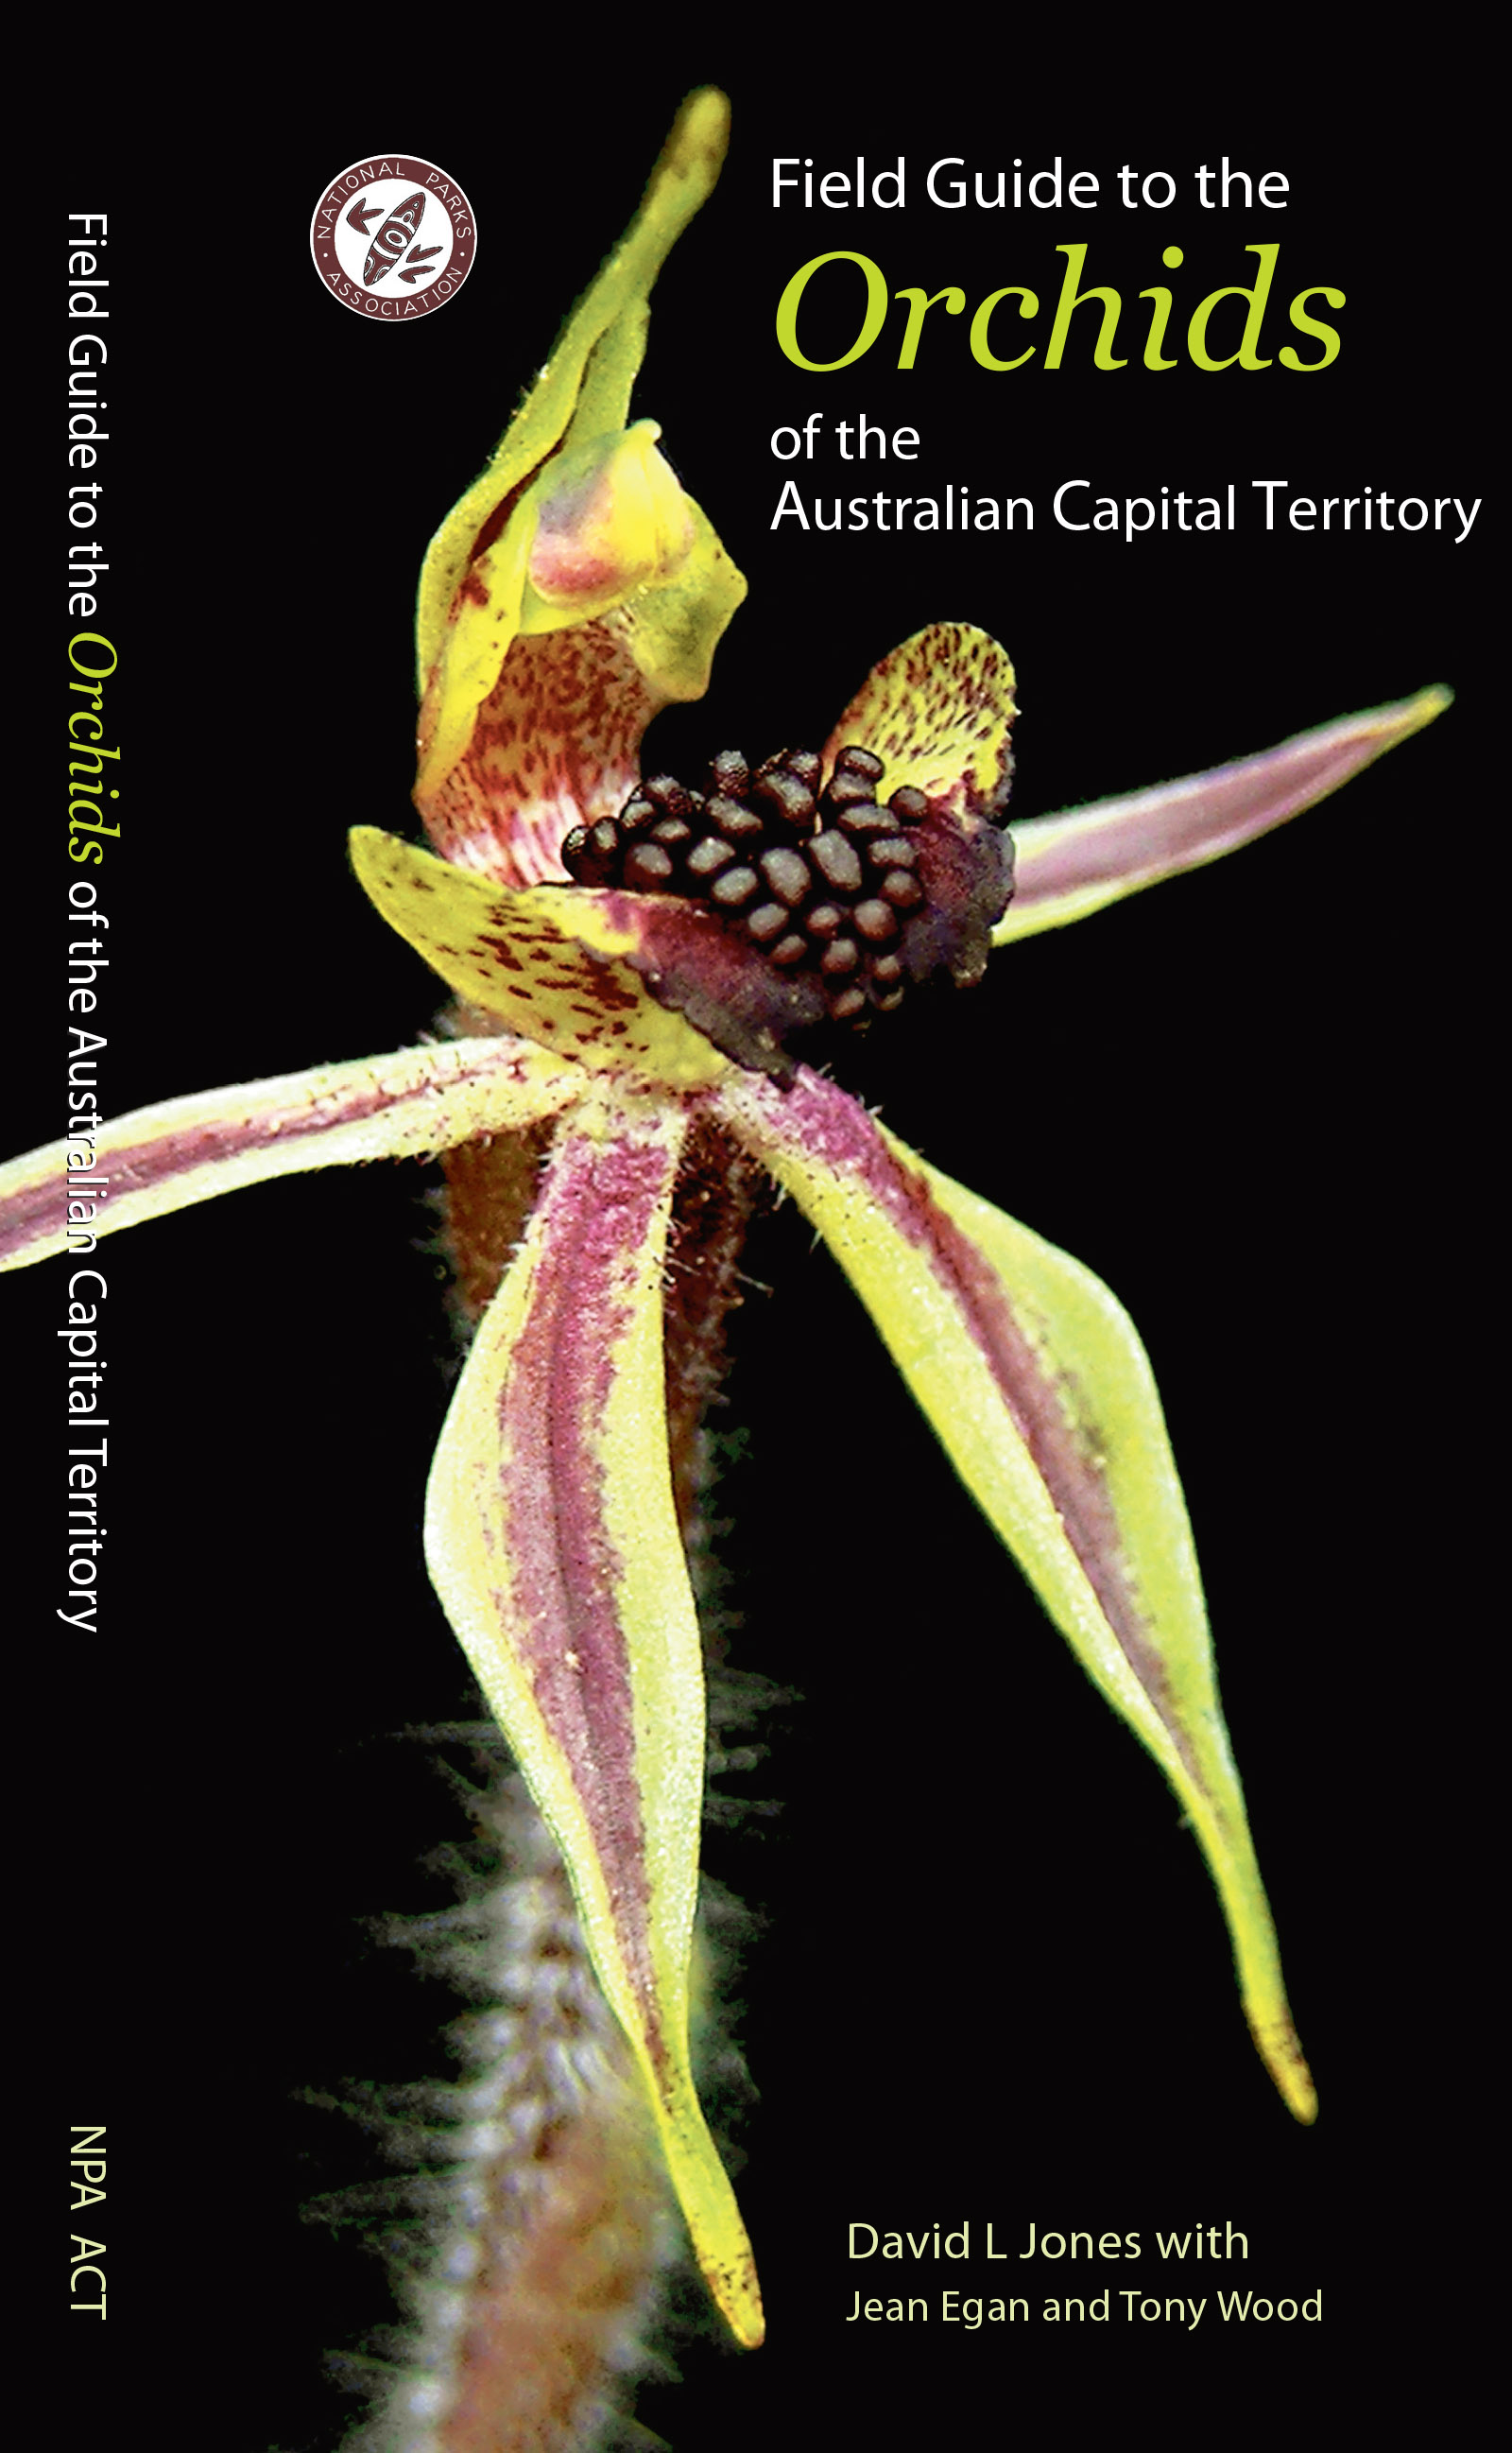 Field guide to the Orchids of the ACT